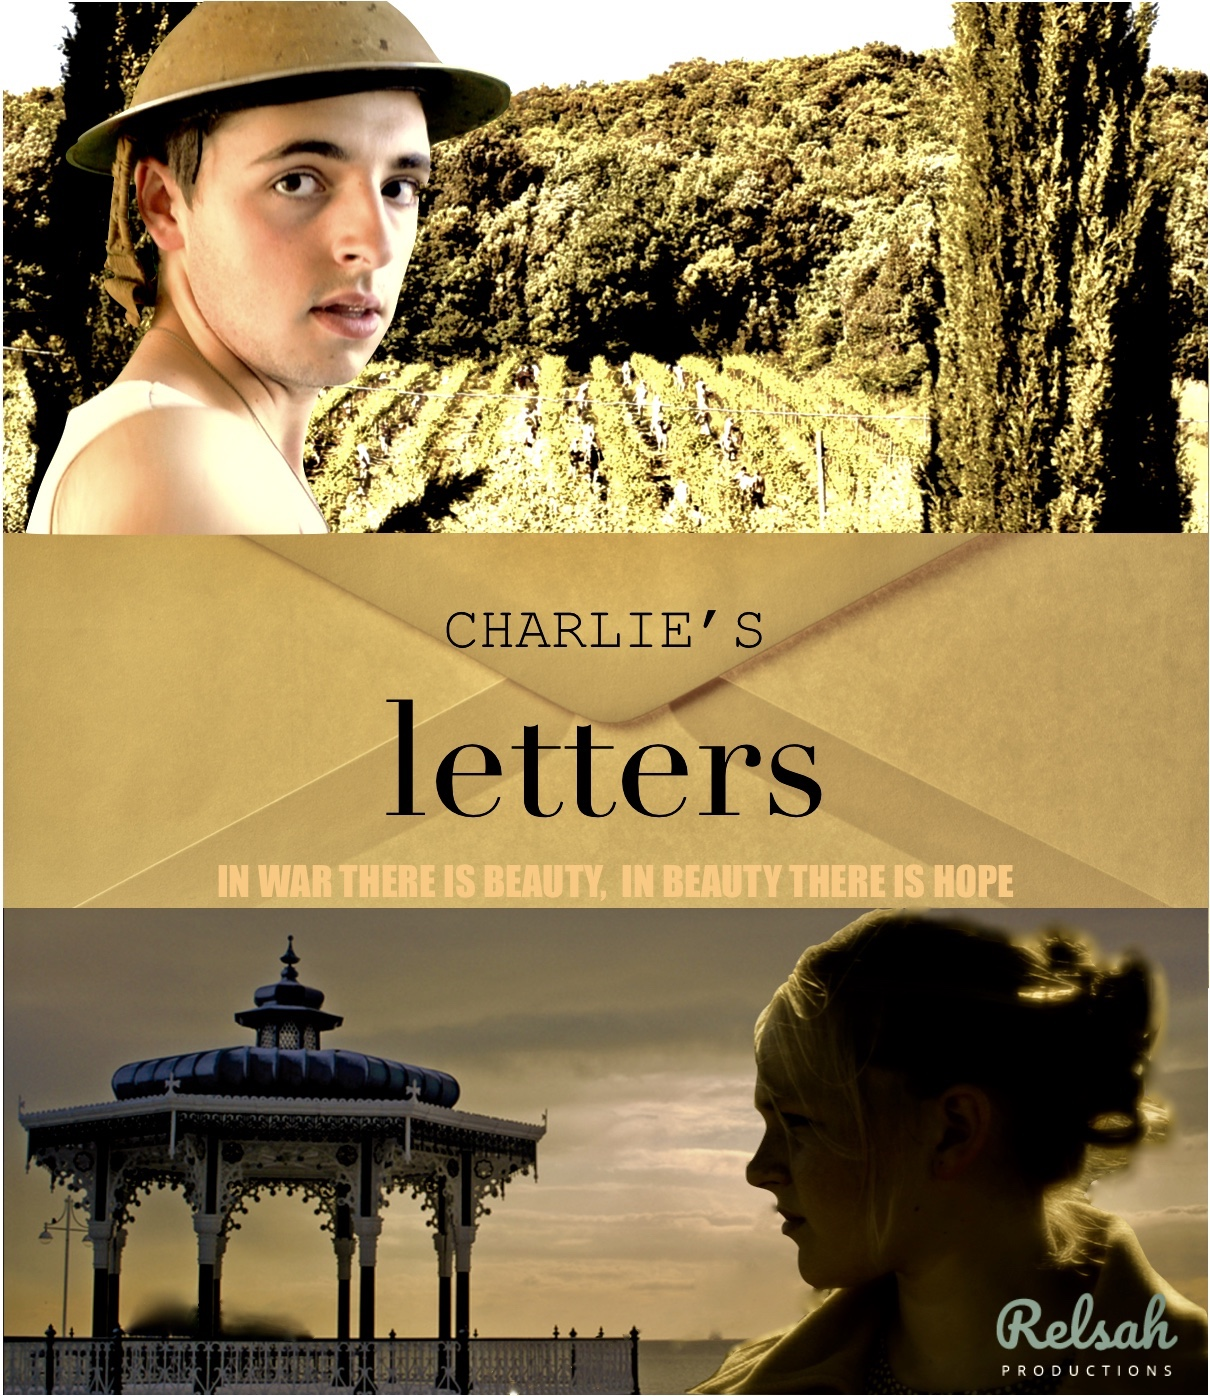 Charlie's Letters now available on DVD!